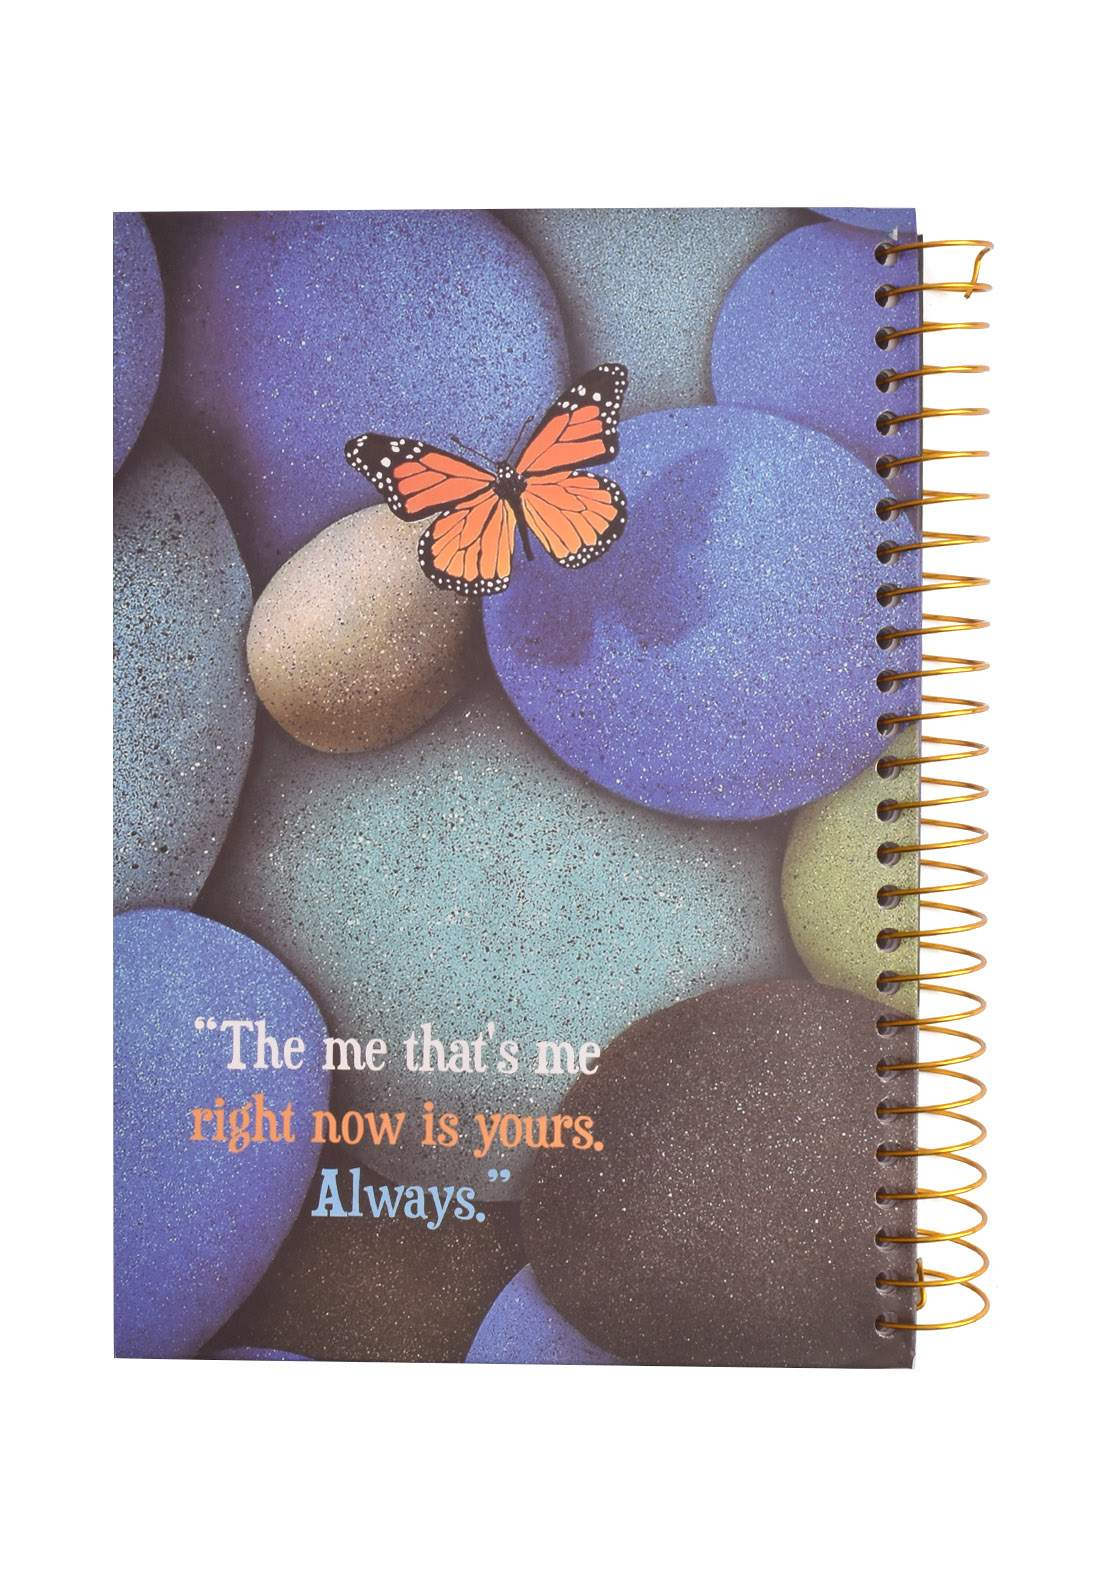 Arabic Spiral Copybook With A Drawing - Colored Stone - 96 Sheets دفتر  96 ورقة